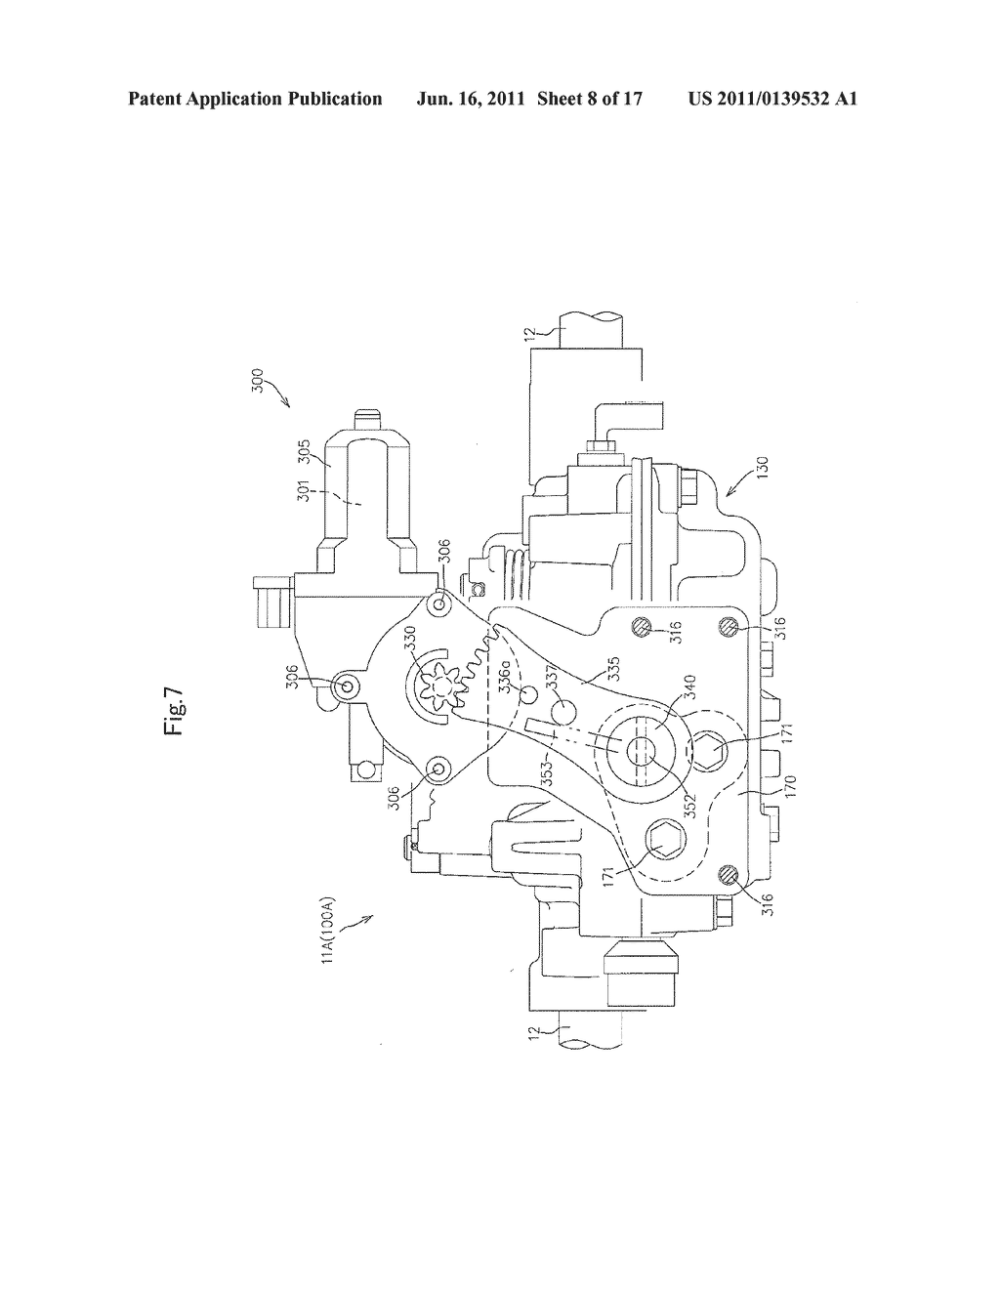 medium resolution of hydraulic motor unit and hydraulic four wheel drive working vehicle diagram schematic and image 09